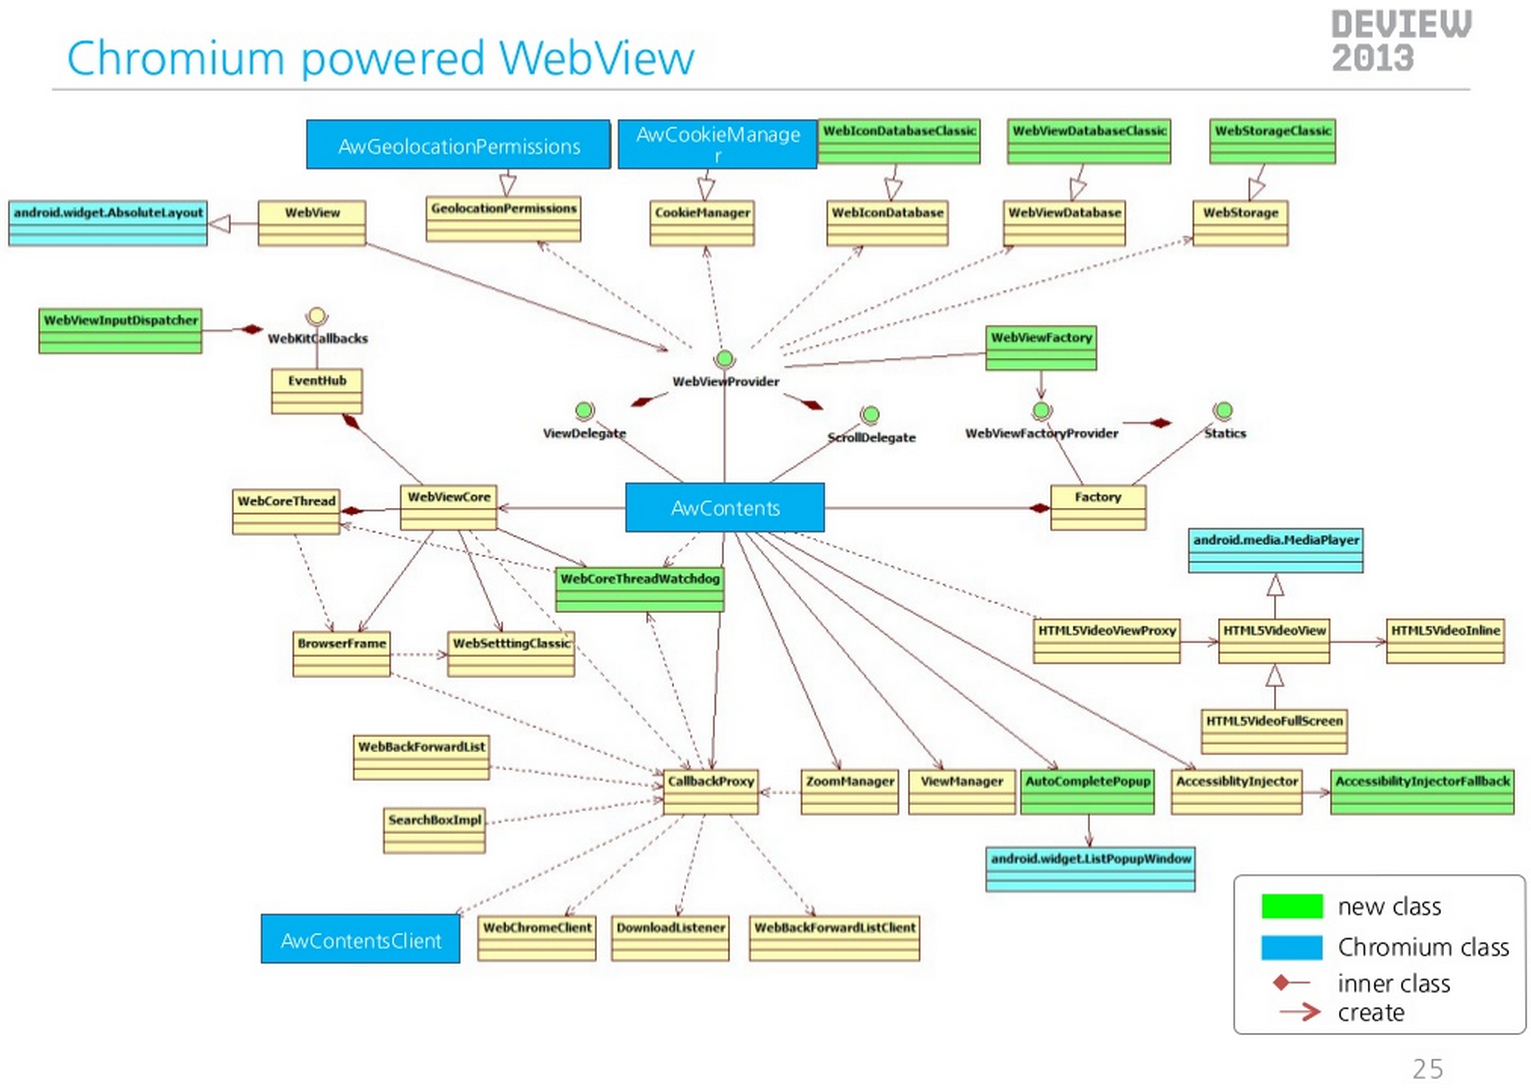 Clank Aka Chrome For Android Vs Webview Based On How To Draw Class Diagram About Compositor Or Something